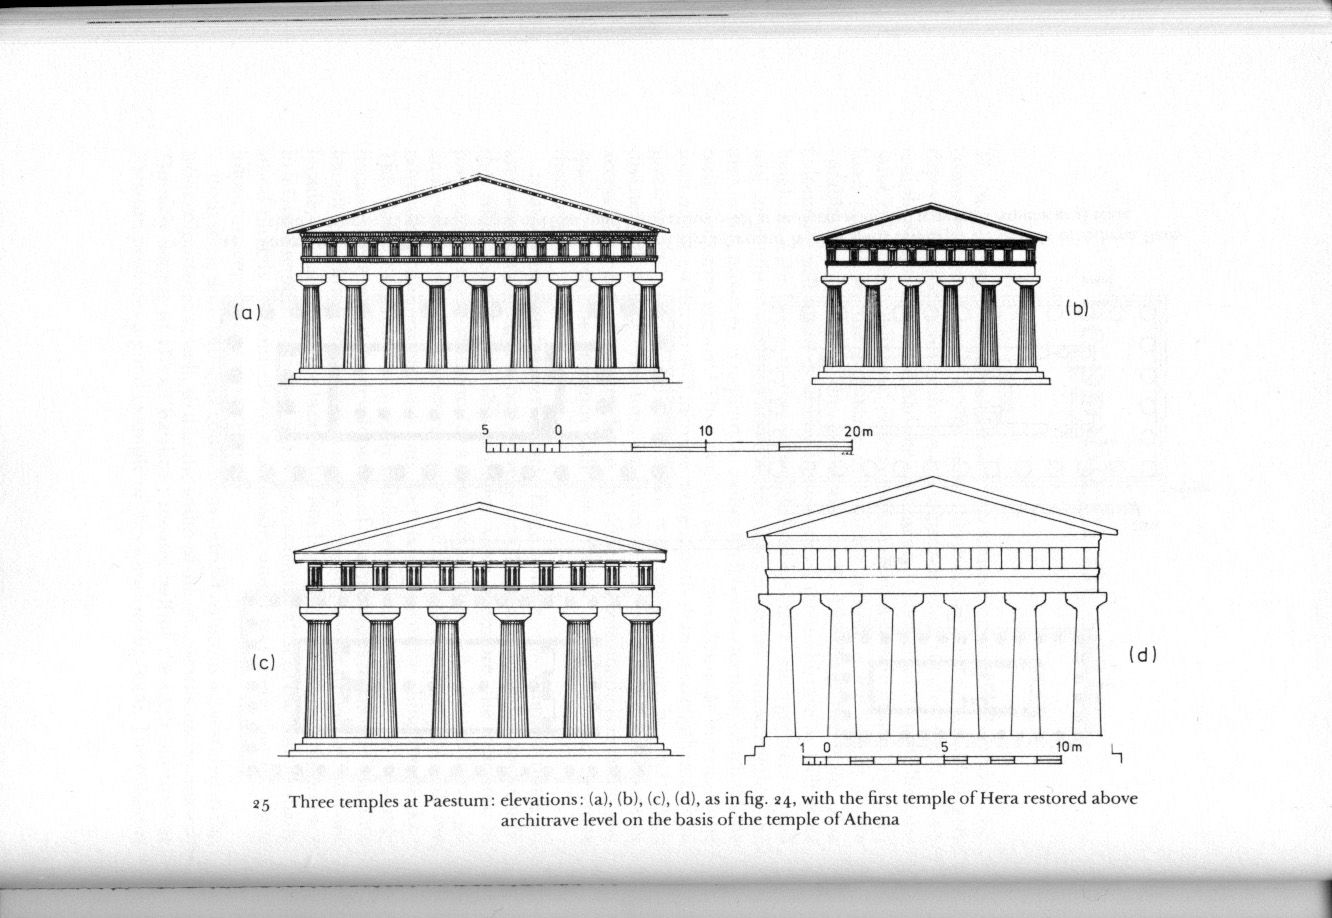 greek engineering architecture Although greek architects rarely progressed further than simple post-and-lintel building techniques, and failed to match the engineering techniques (arch, vault) developed in roman architecture, they succeeded in creating the most beautiful, monumental structures of the ancient world.